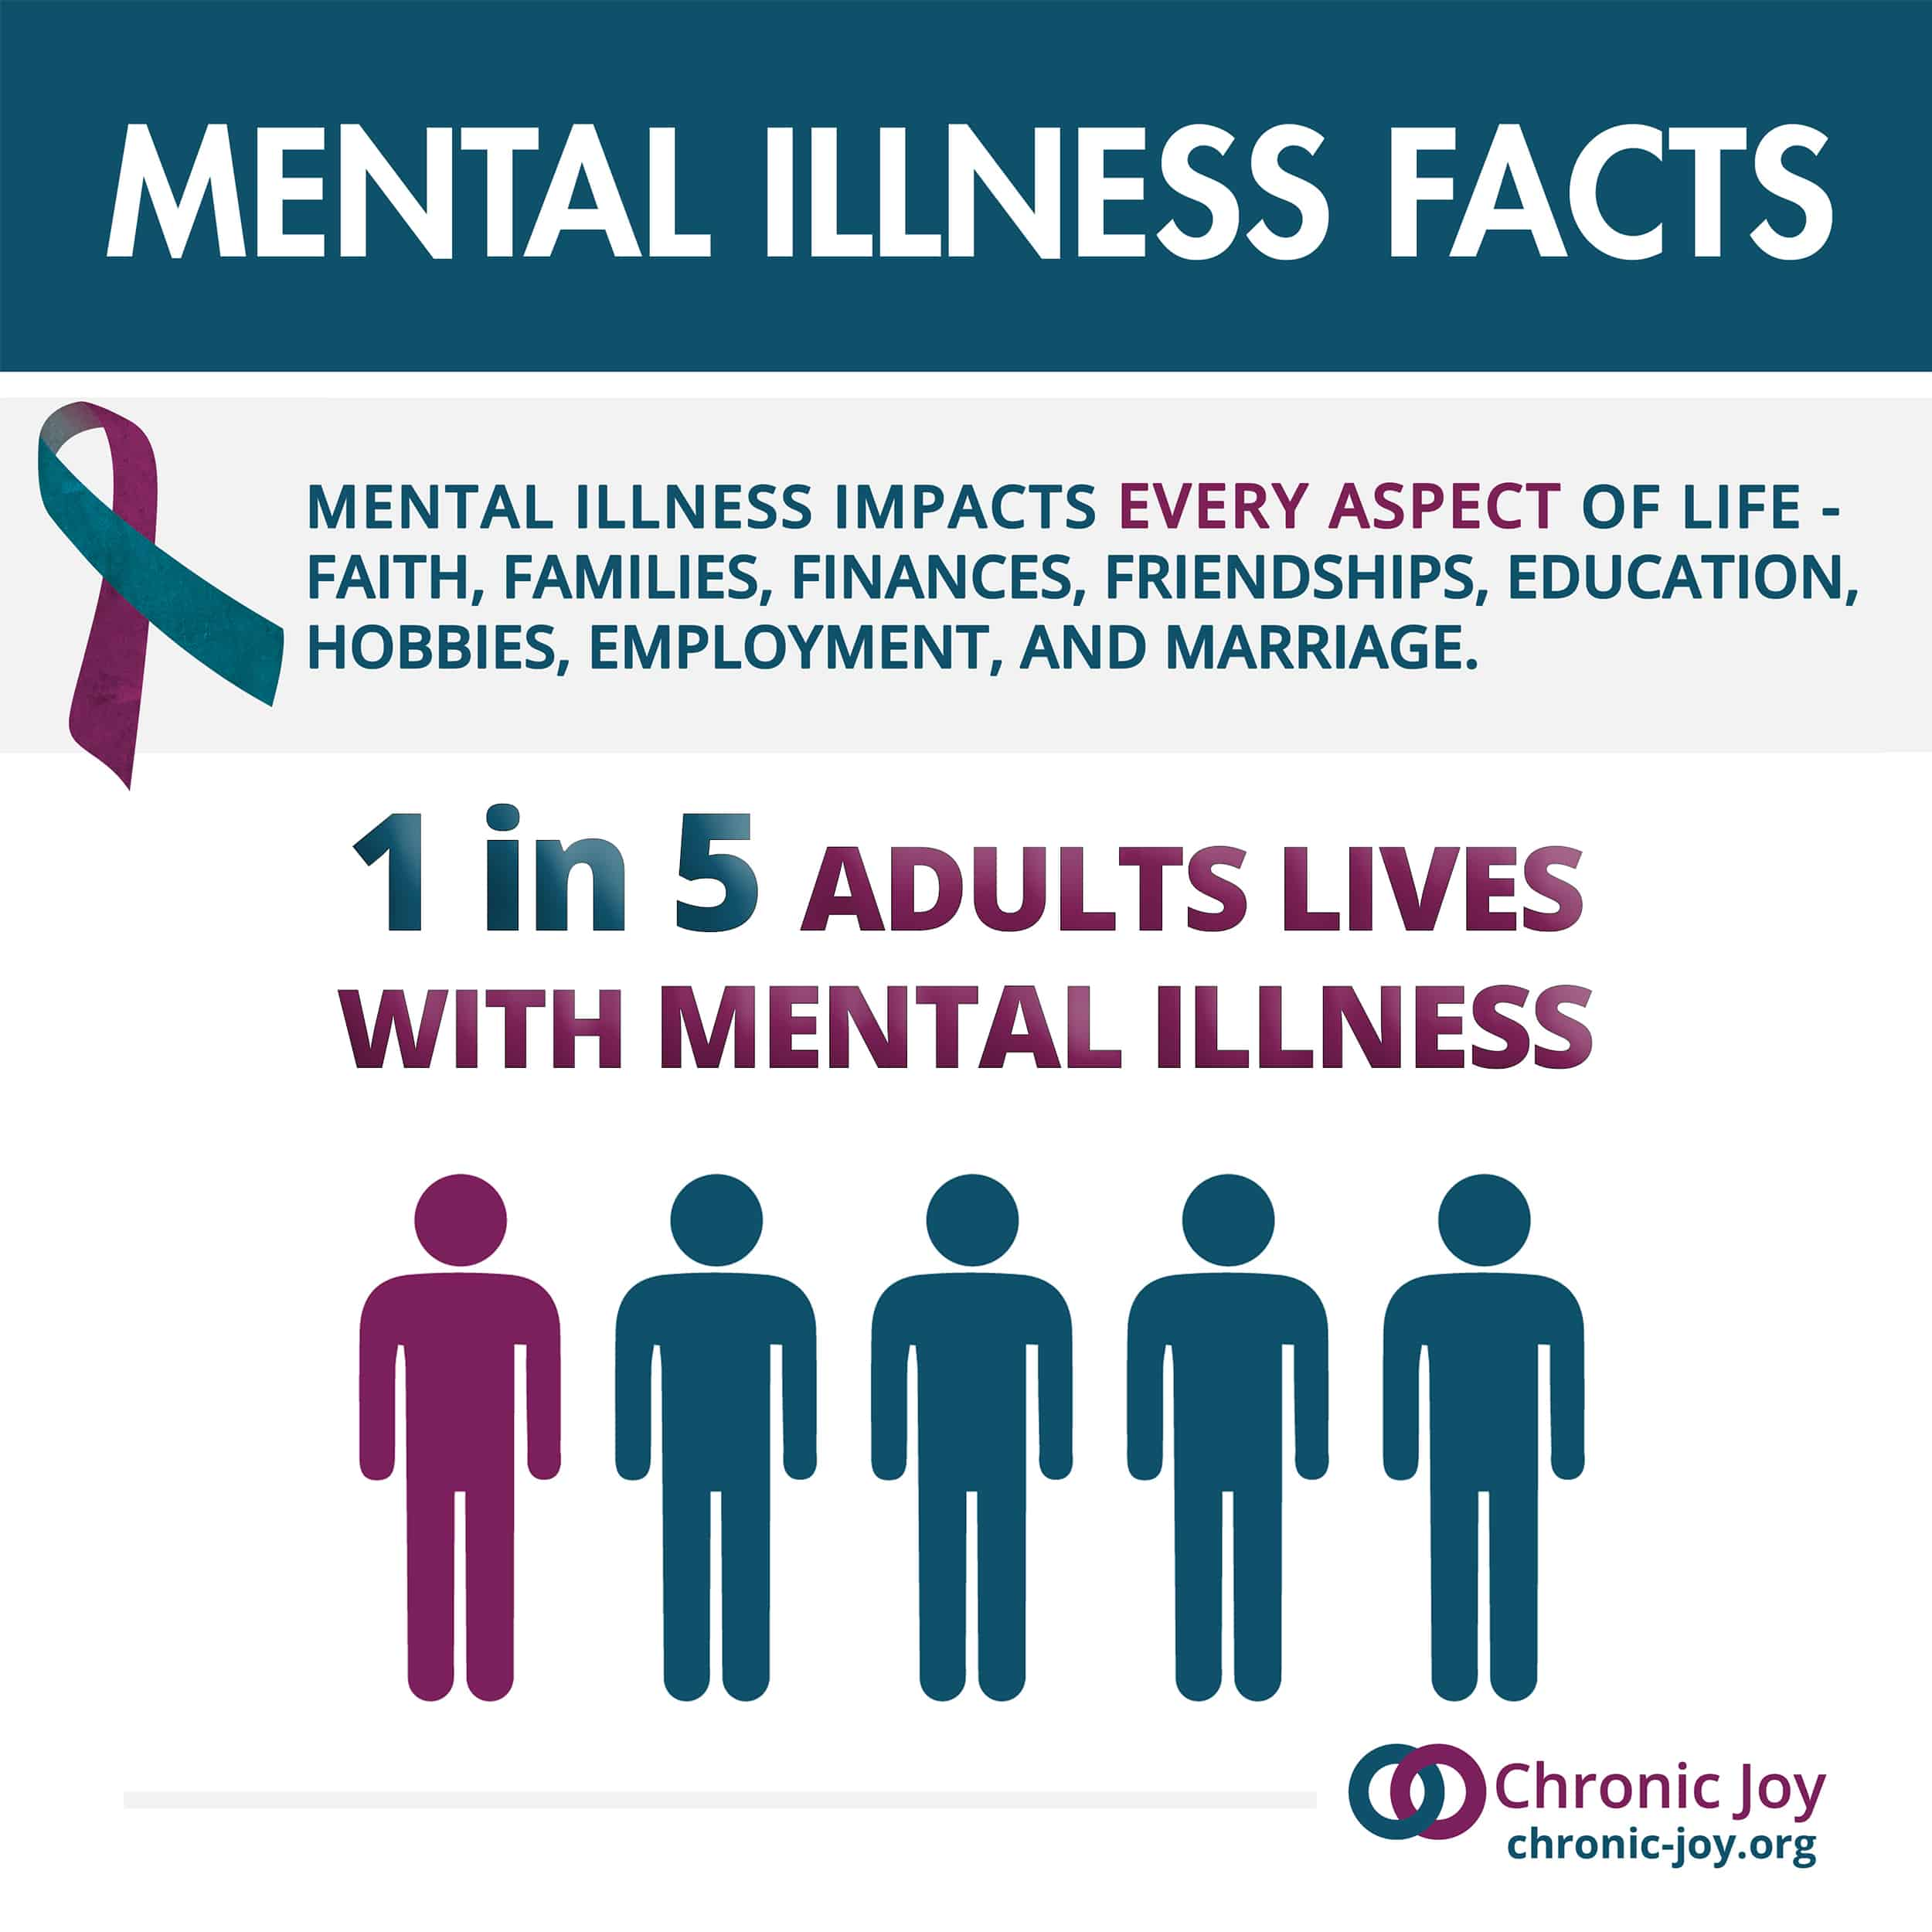 1 in 5 adults lives with chronic illness